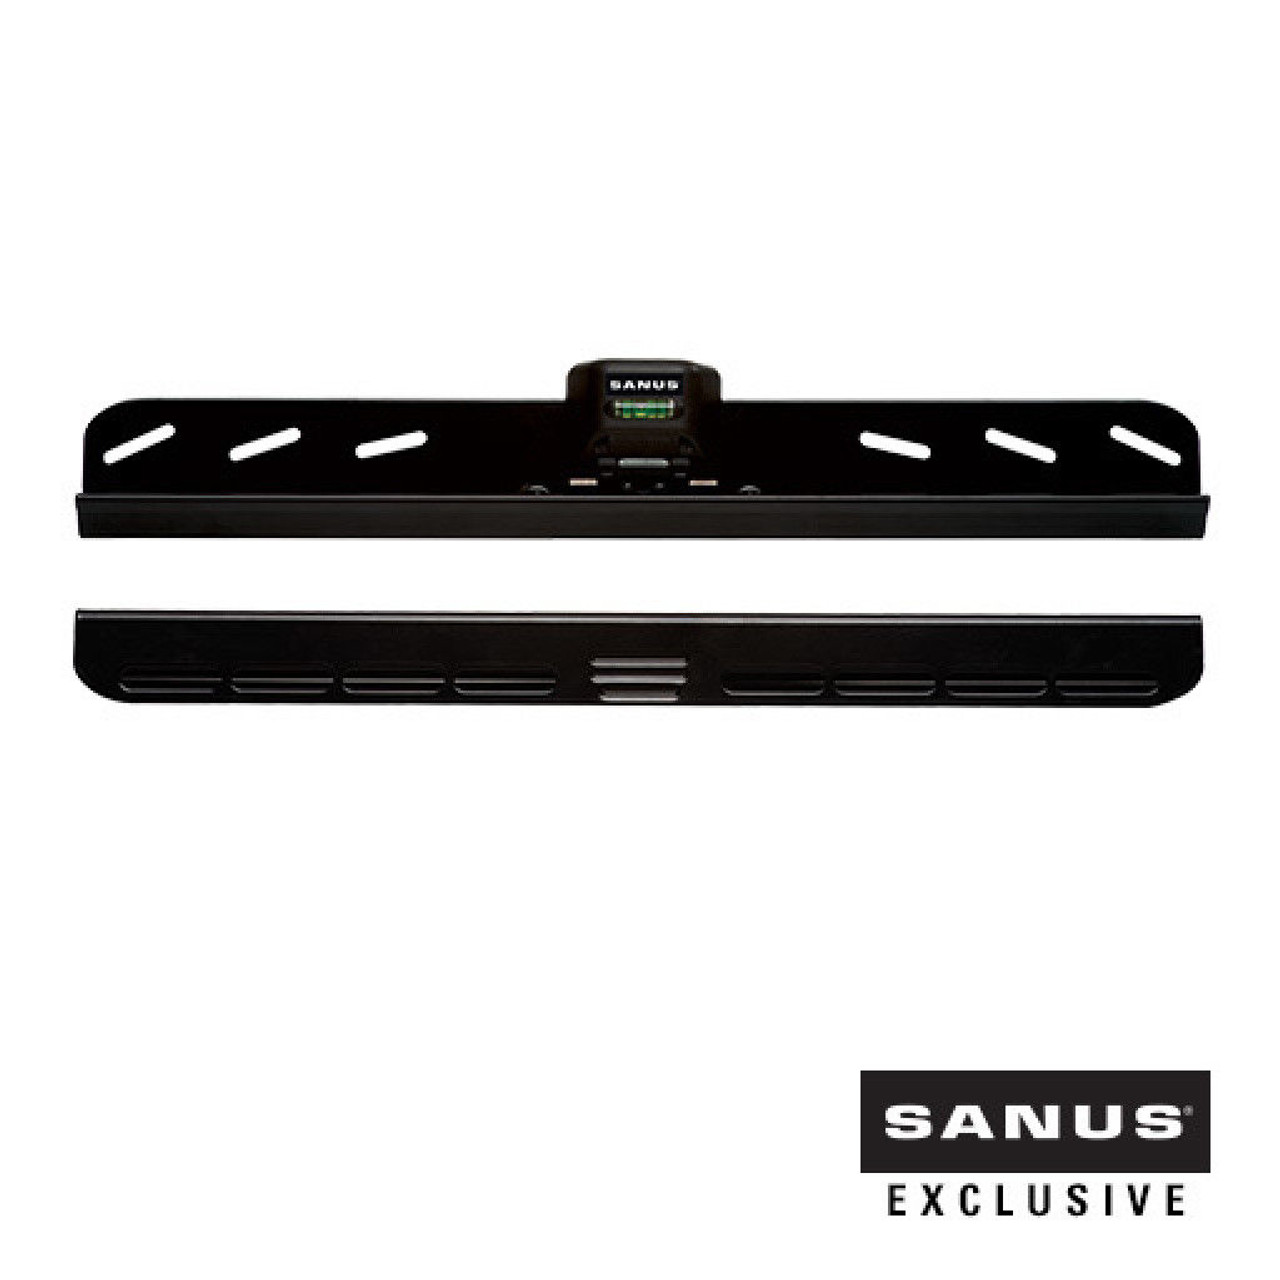 "Sanus VML44 Fixed Position Wall Mount for 22"" to 50"" TVs - RRP $69.00"